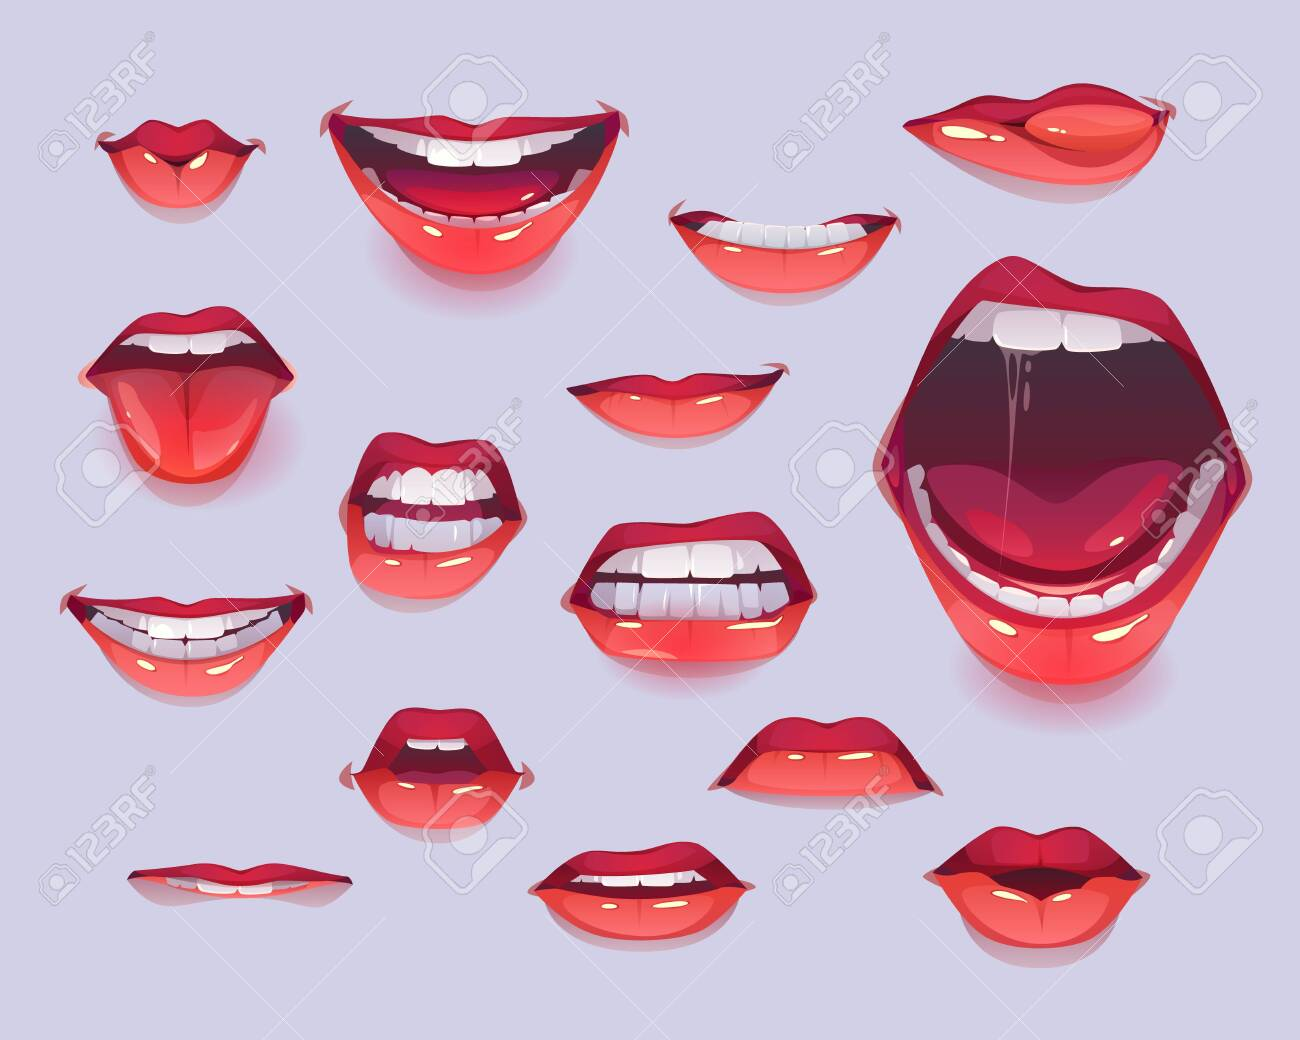 Woman mouth set. Red lips expressing different emotions as happy smiling, shouting, show tongue, kiss, angry gritting teeth. Design elements, icons, stickers. Cartoon vector illustration clip art - 138080566